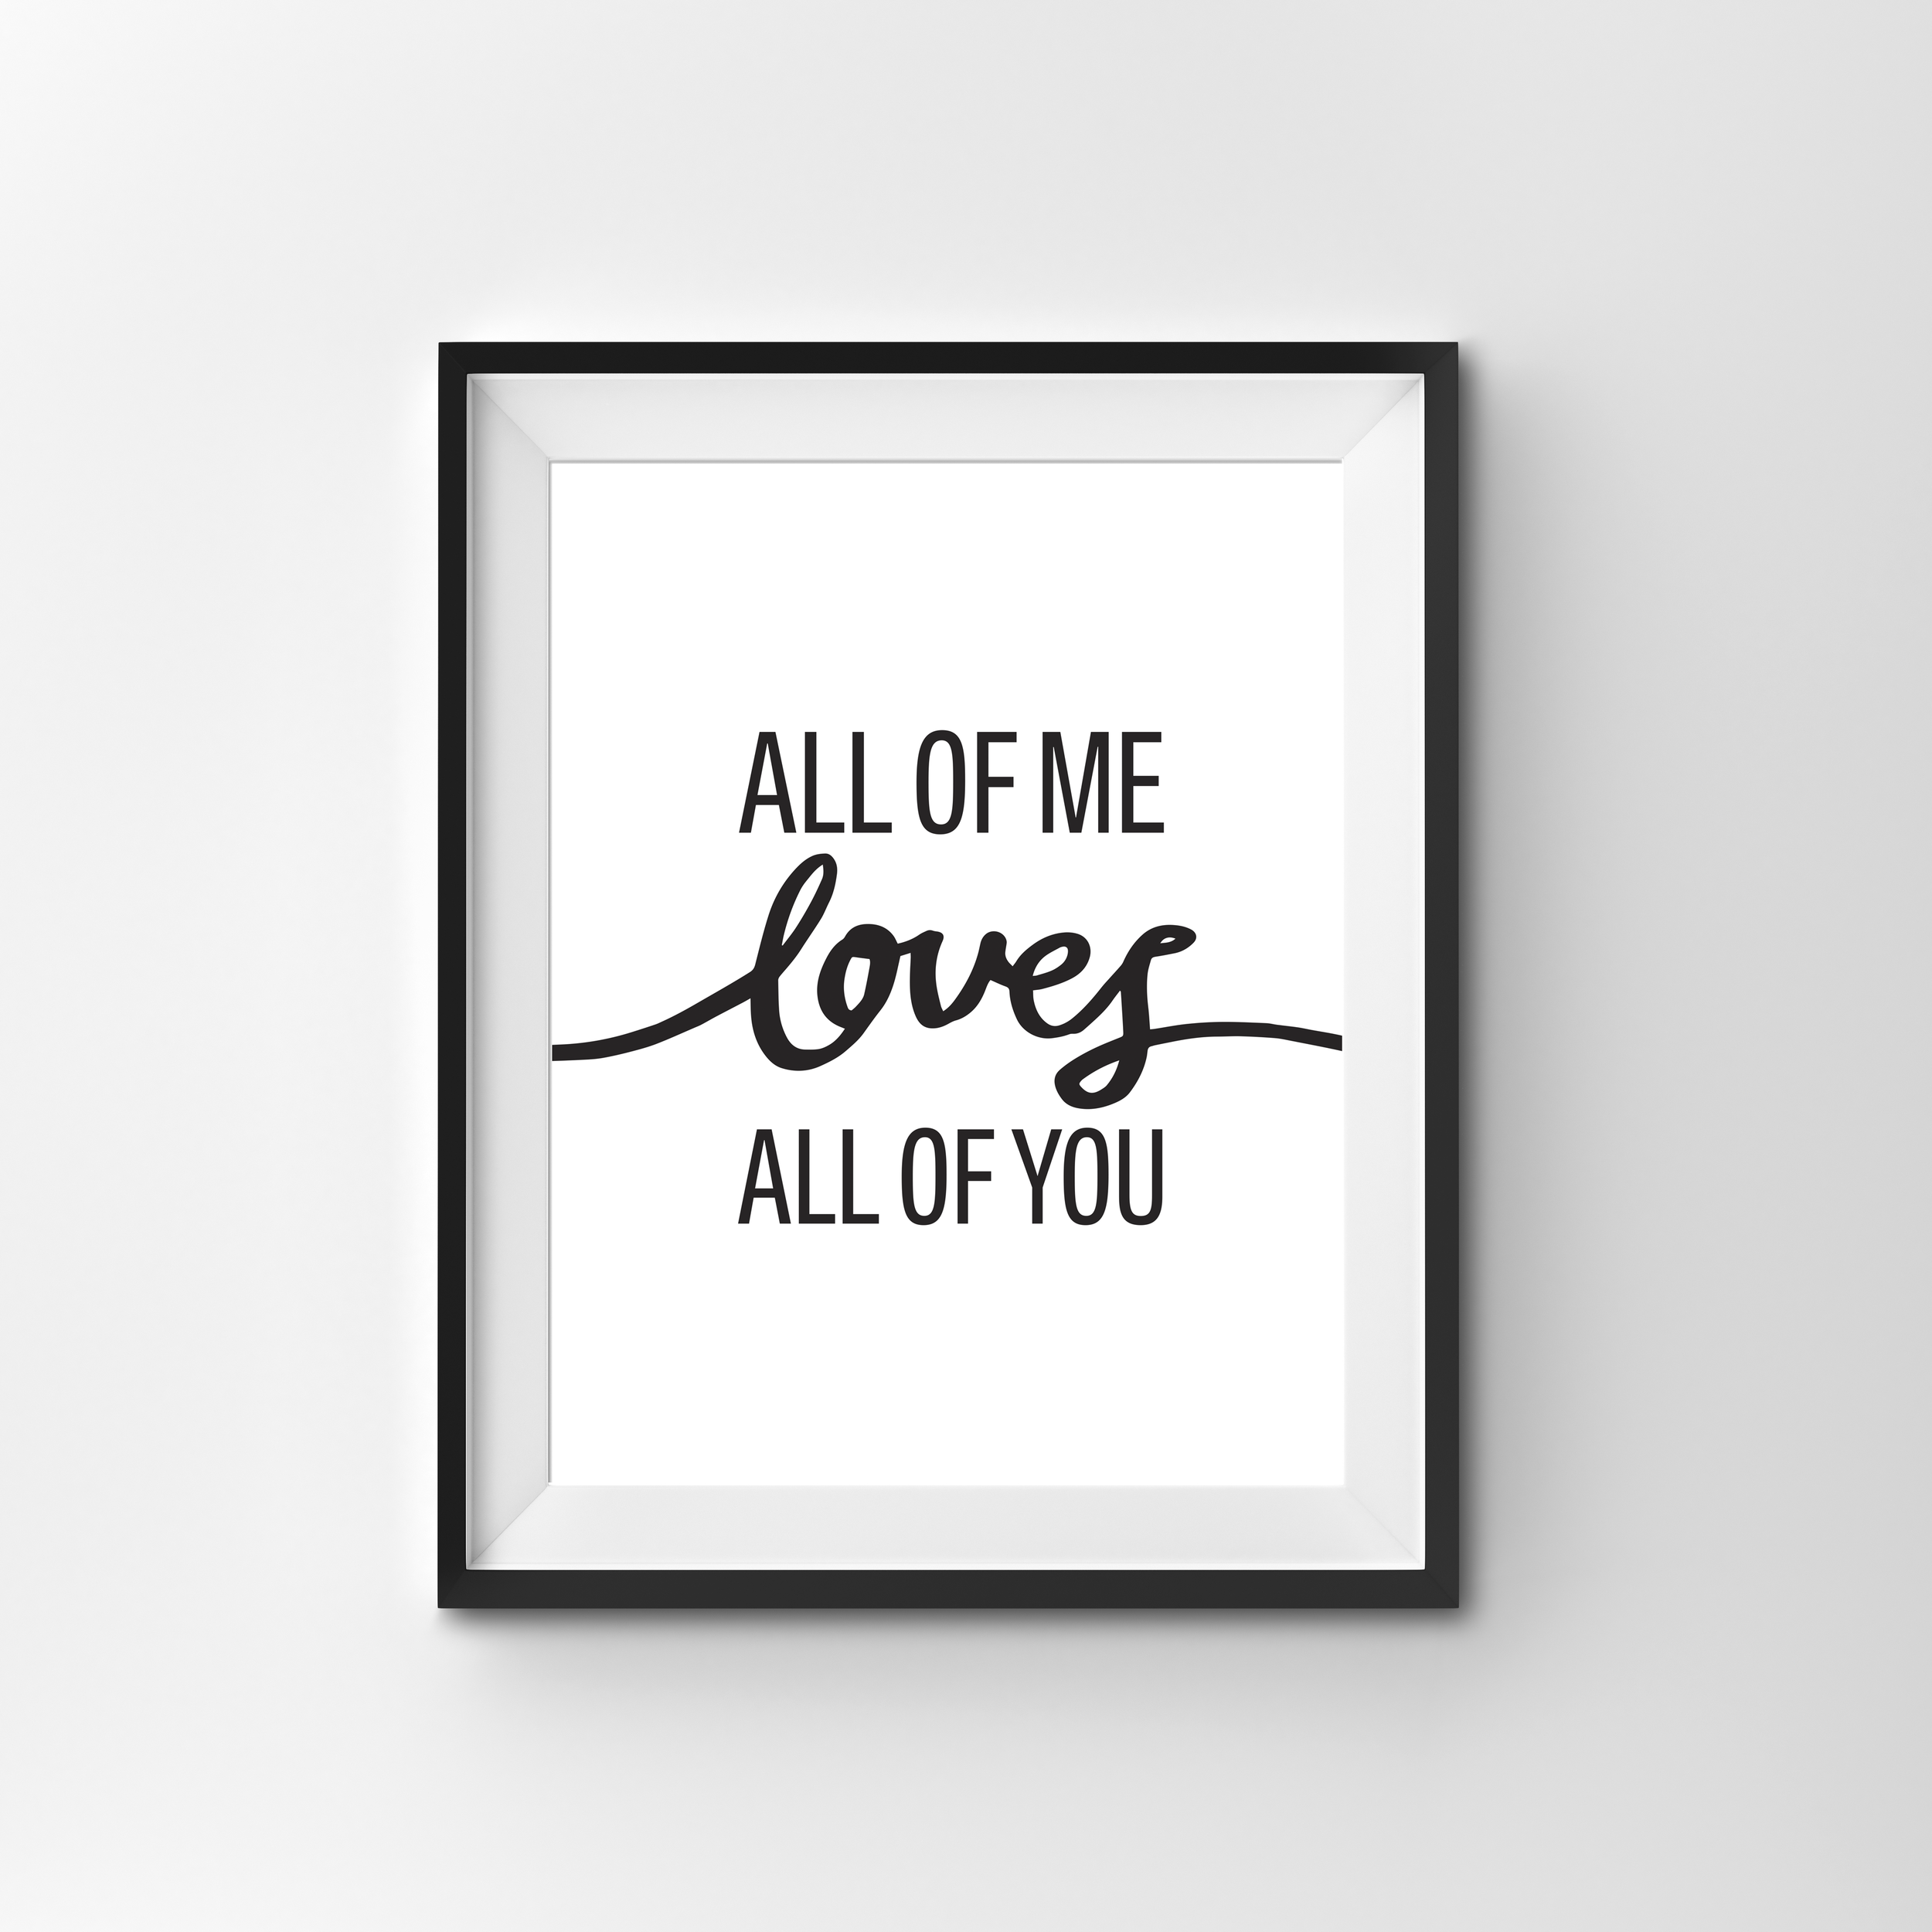 ALL OF ME   BLACK & WHITE PRINT PRINTED ON 300gsm TEXTURED CARD STOCK   A4 $17.00   A3 $27.00